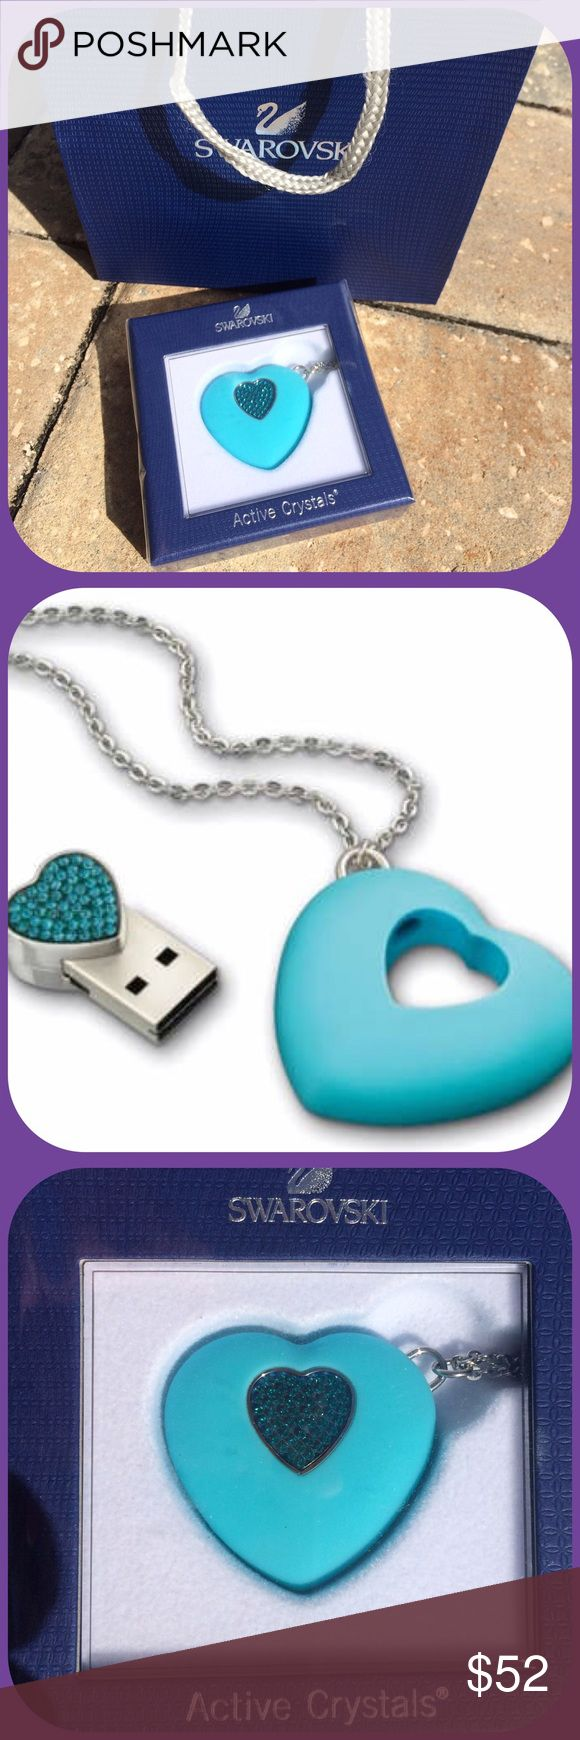 ✨HP✨SWAROVSKI Crystal Blue Heart Pendant 4G USB Swarovski Active Crystals, trendy & innovative  this funky accessory is both a necklace and a USB key! Hanging on a stainless steel chain, the blue silicon heart holds a heart-shaped USB key embellished in 54 Blue Zircon Crystals NEW in BOX, comes with SWAROVSKI gift bag.✨HP by @mandapanda a tribute to @blueskyaction Sarah✨ Swarovski Jewelry